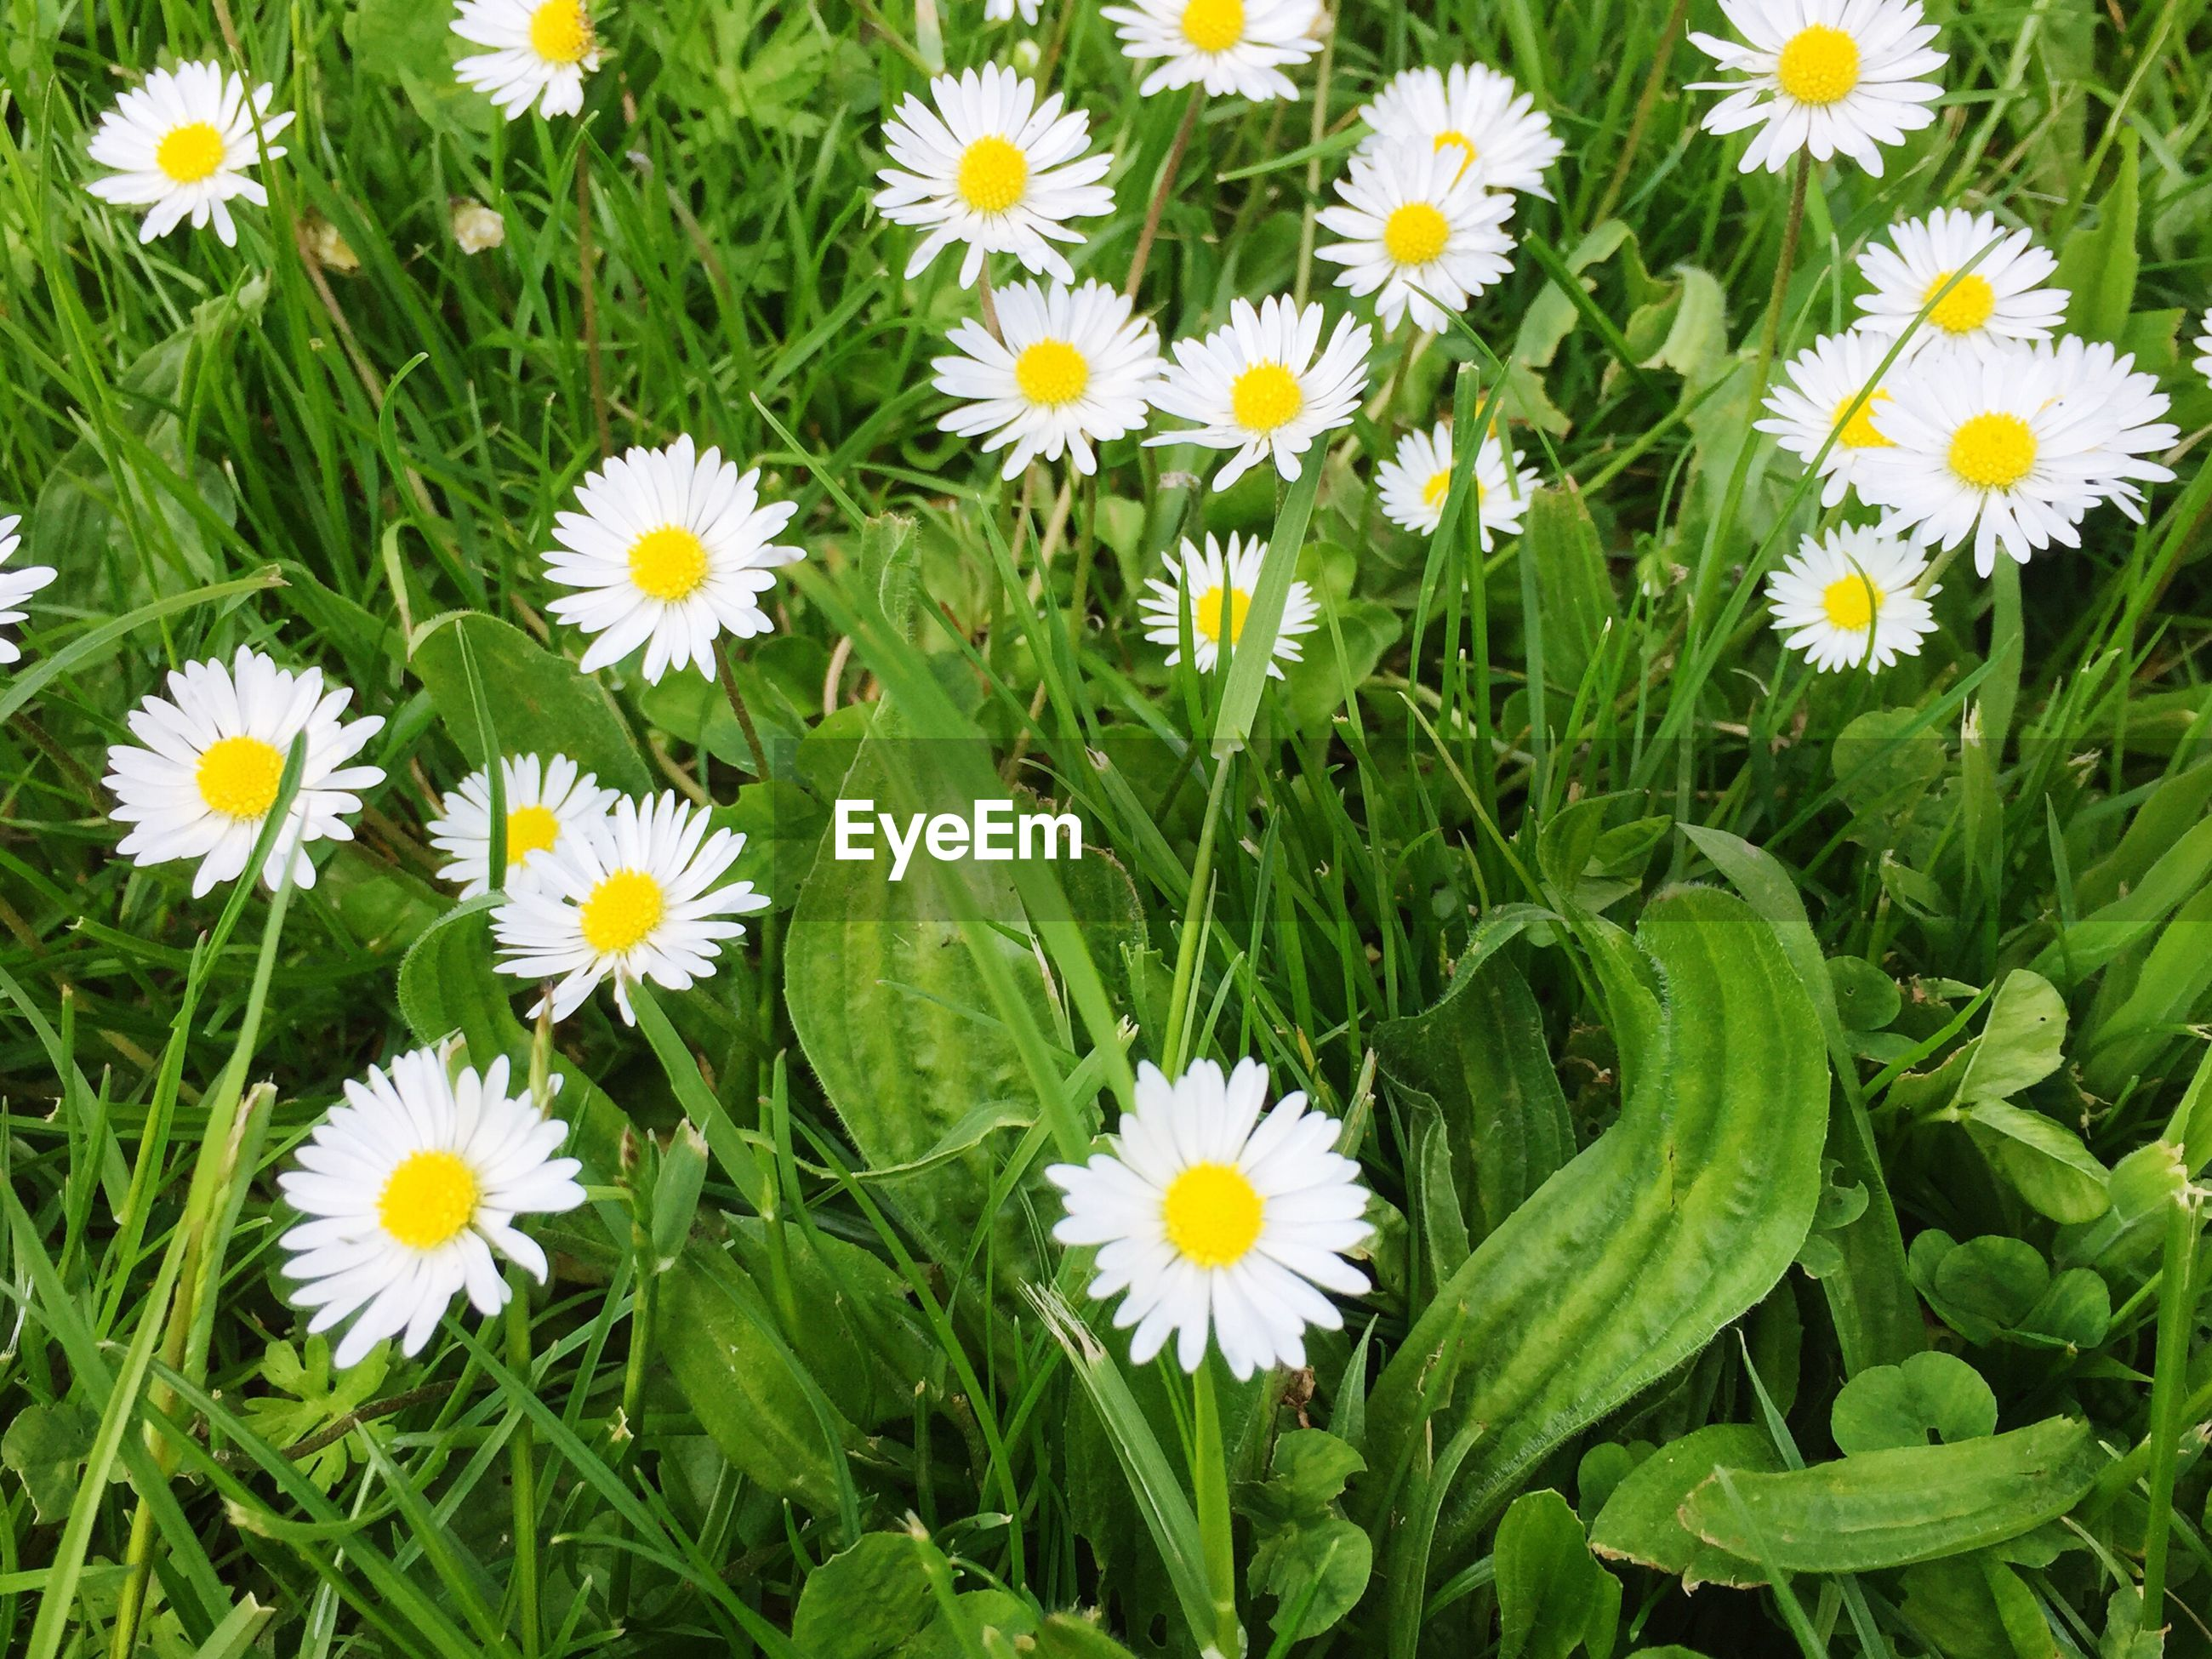 CLOSE-UP OF WHITE DAISY FLOWERS BLOOMING IN PARK